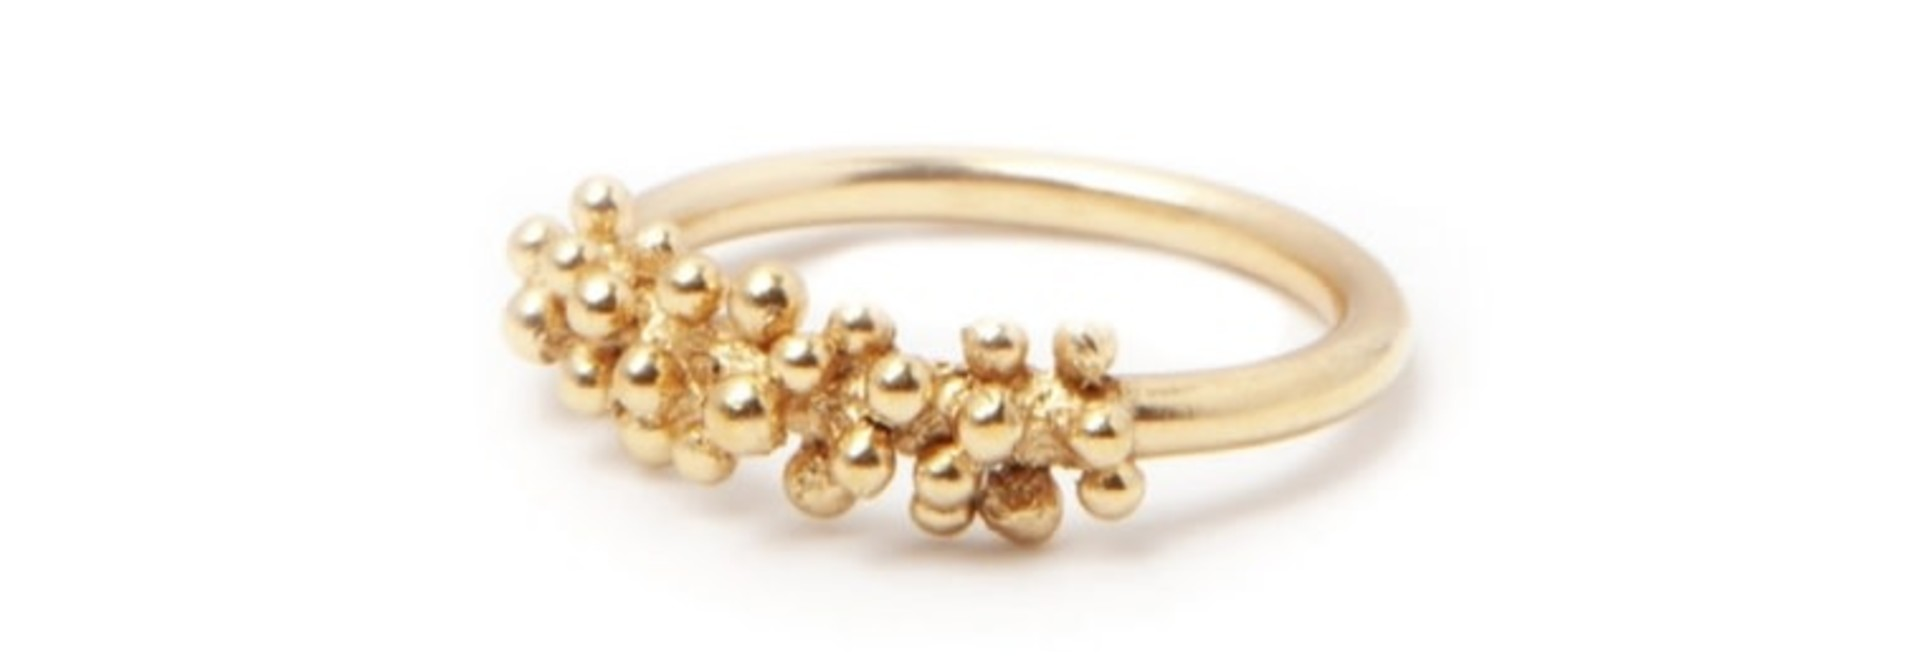 vienne ring gold